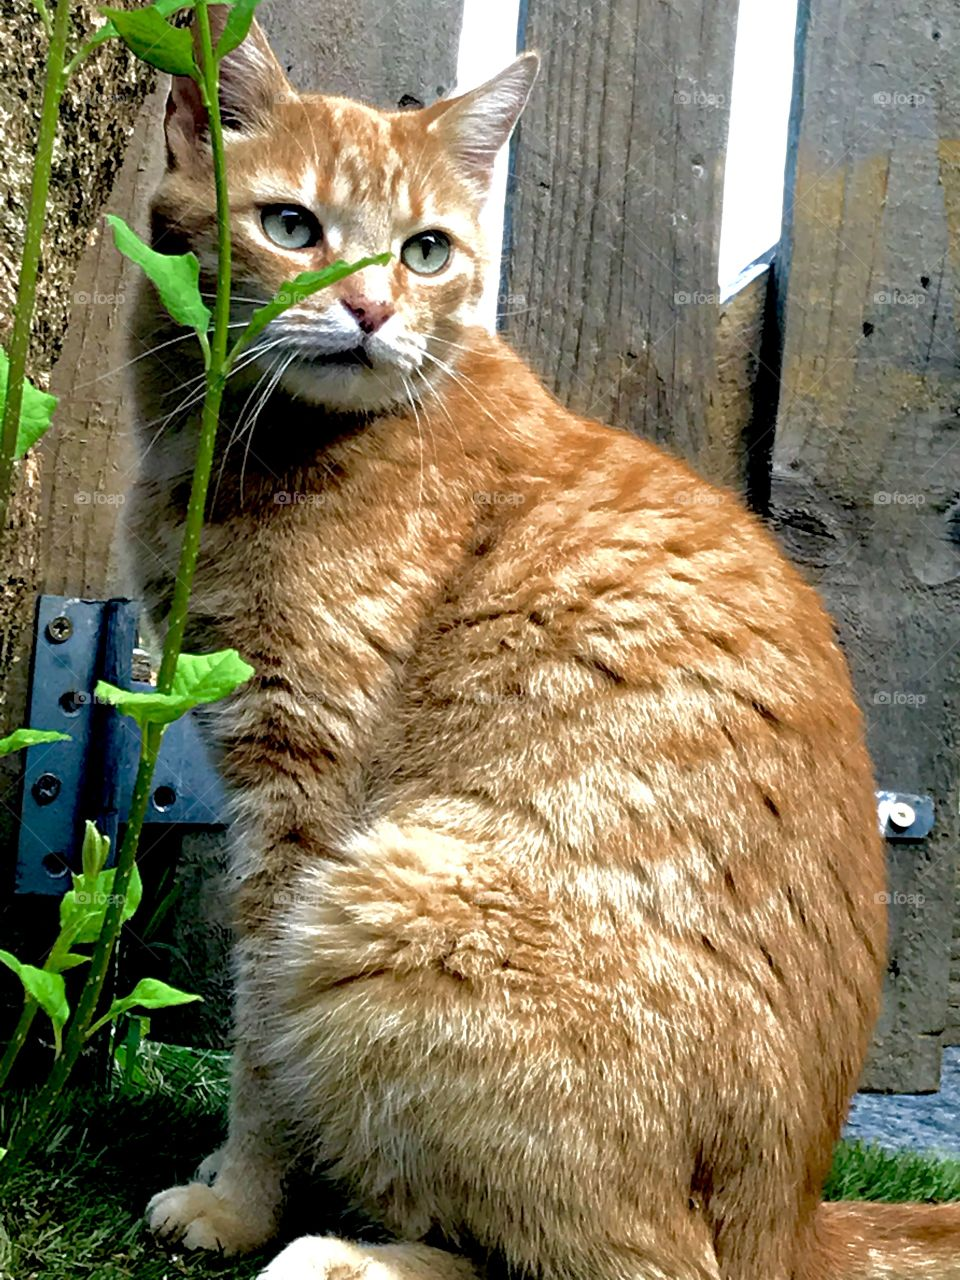 Cat posing for the camera, in front of a gate